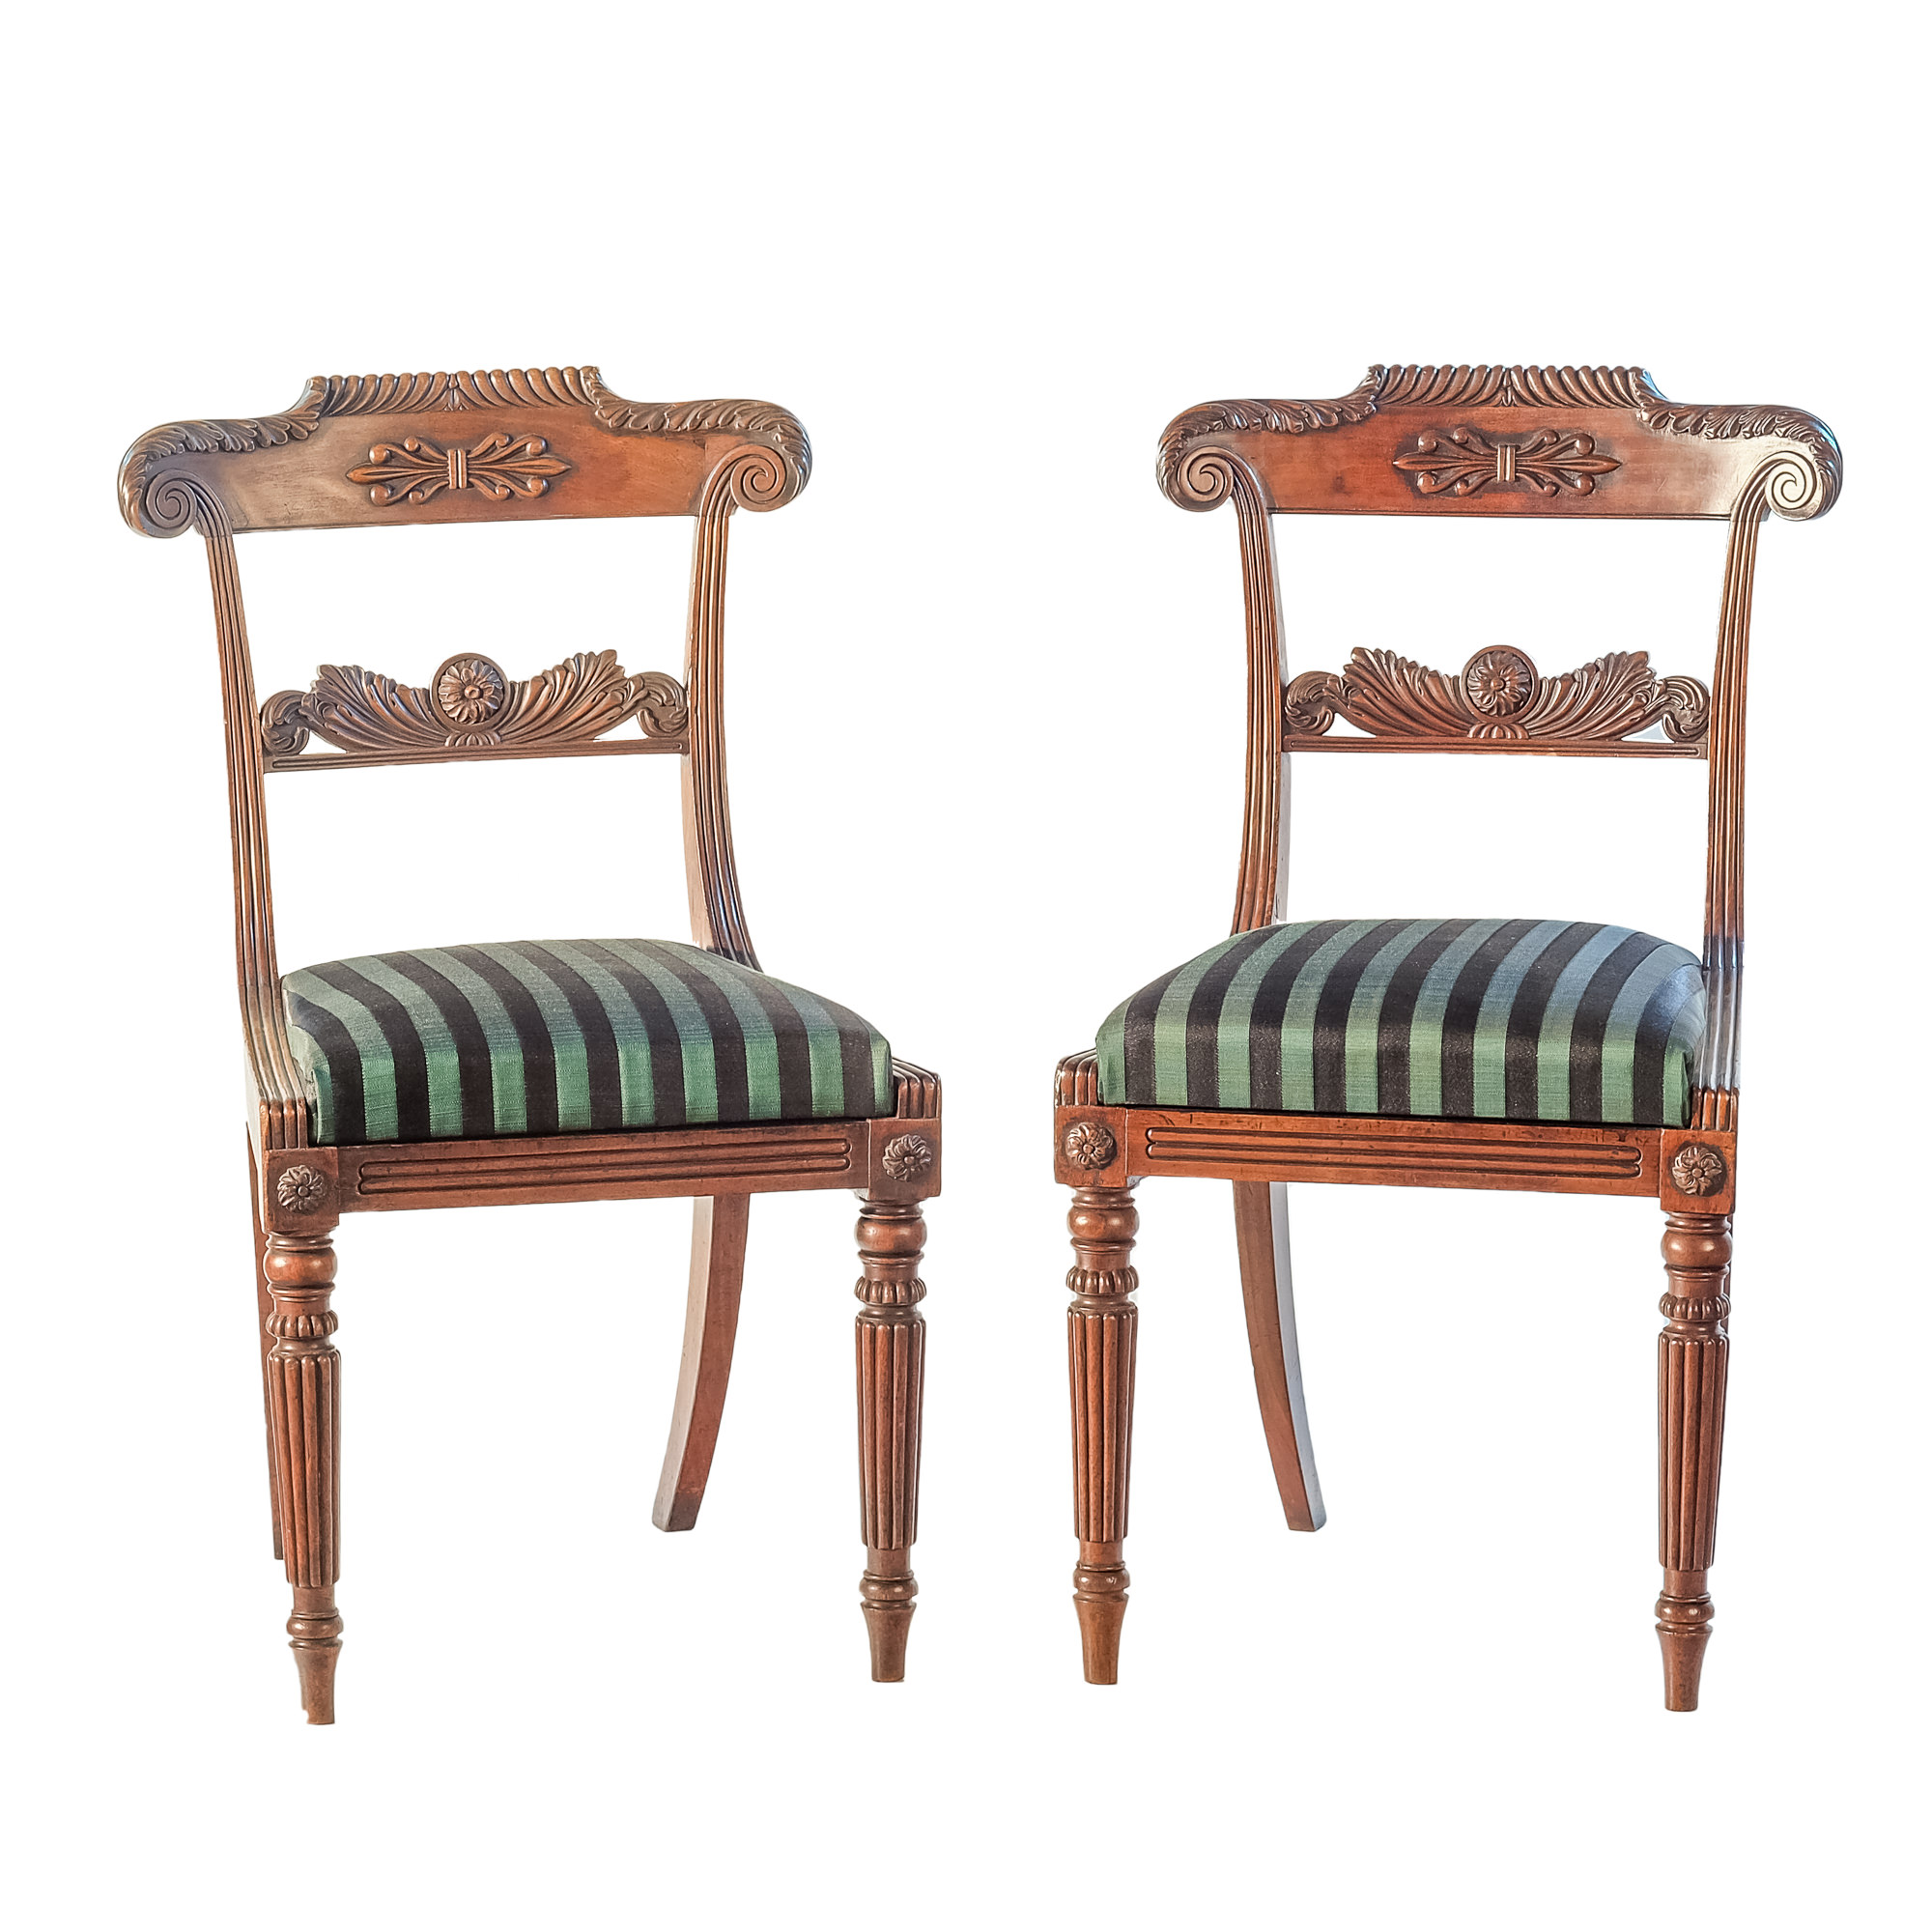 'Pair Finely Carved Regency Period Mahogany Chairs with Striped Green and Black Horsehair Upholstery Circa 1820'